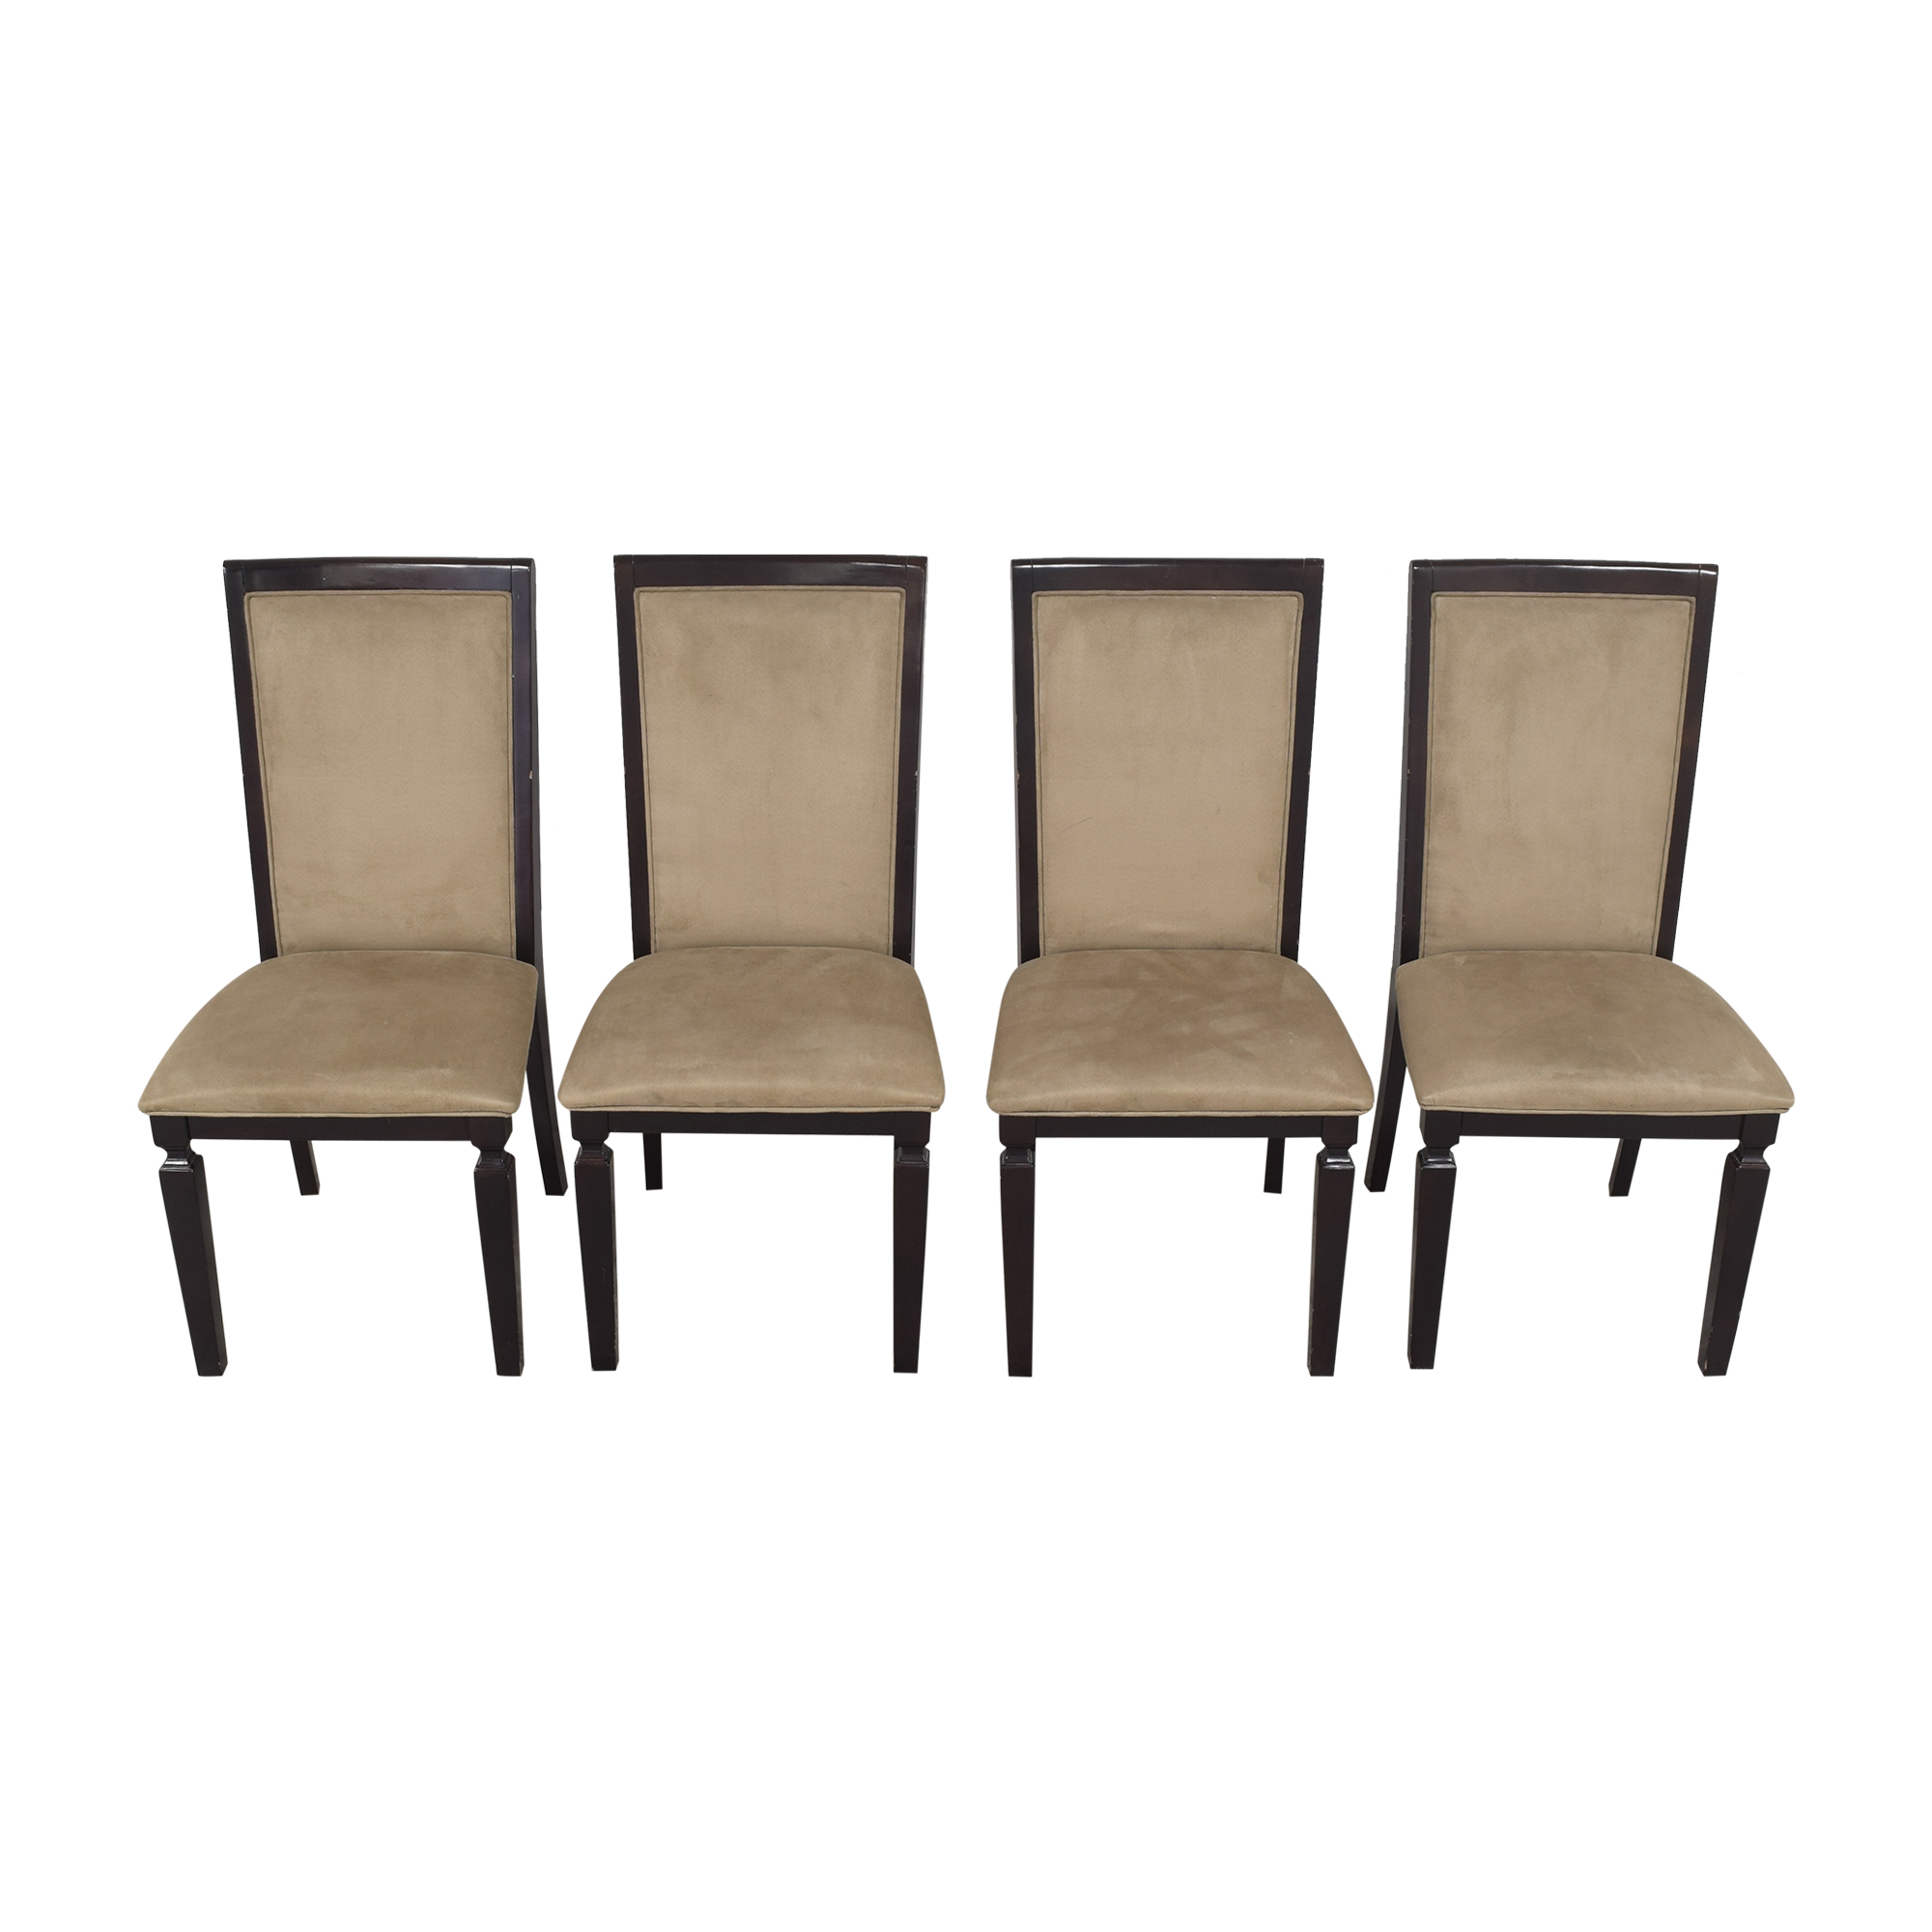 buy Homelegance Furniture Dining Side Chairs Homelegance Furniture